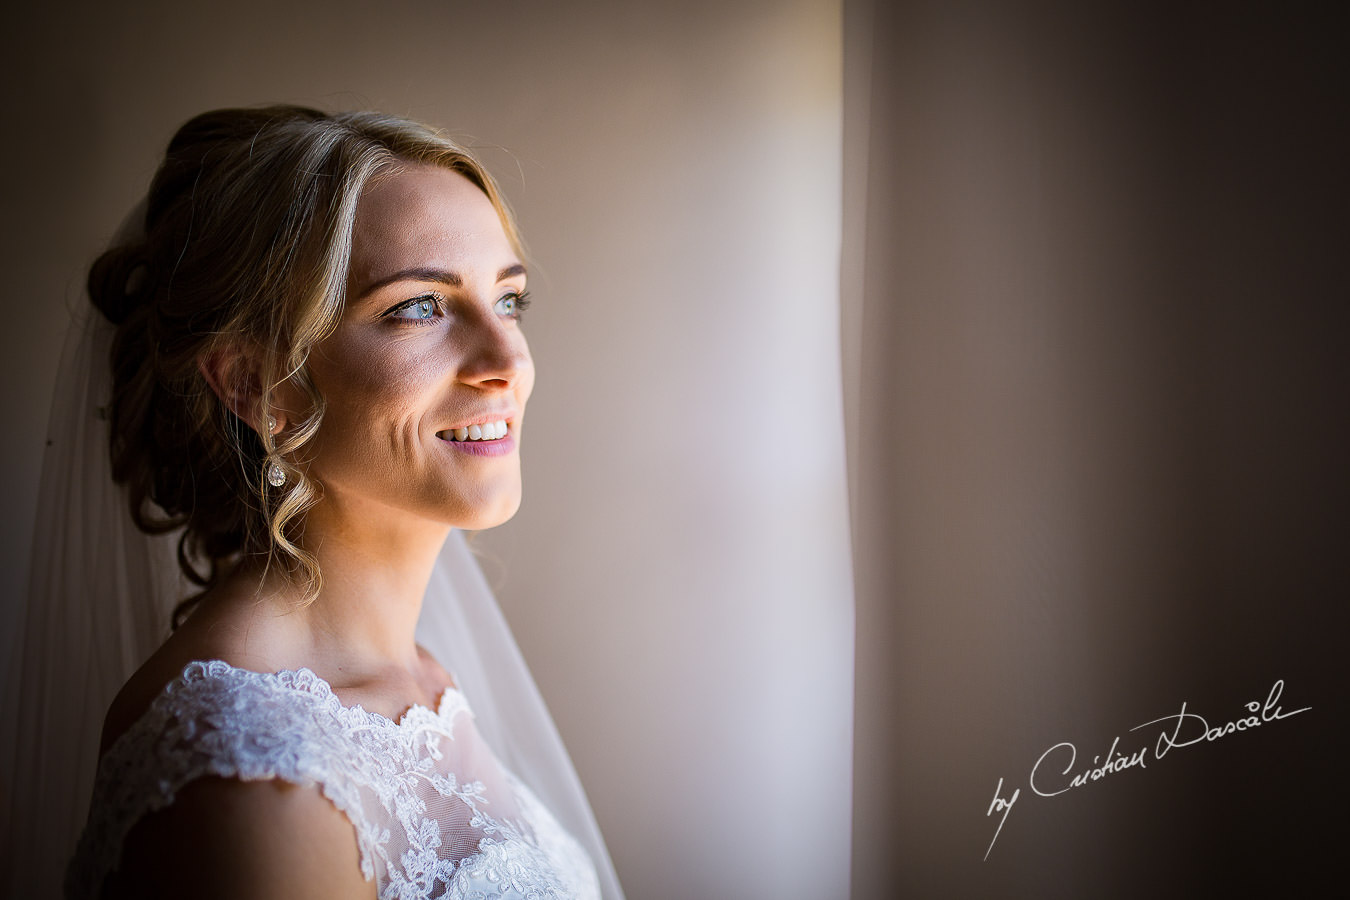 Bridal Portraiture captured at a Vasilias Nikoklis Inn Wedding in Paphos. Cyprus Wedding Photography by Cristian Dascalu.